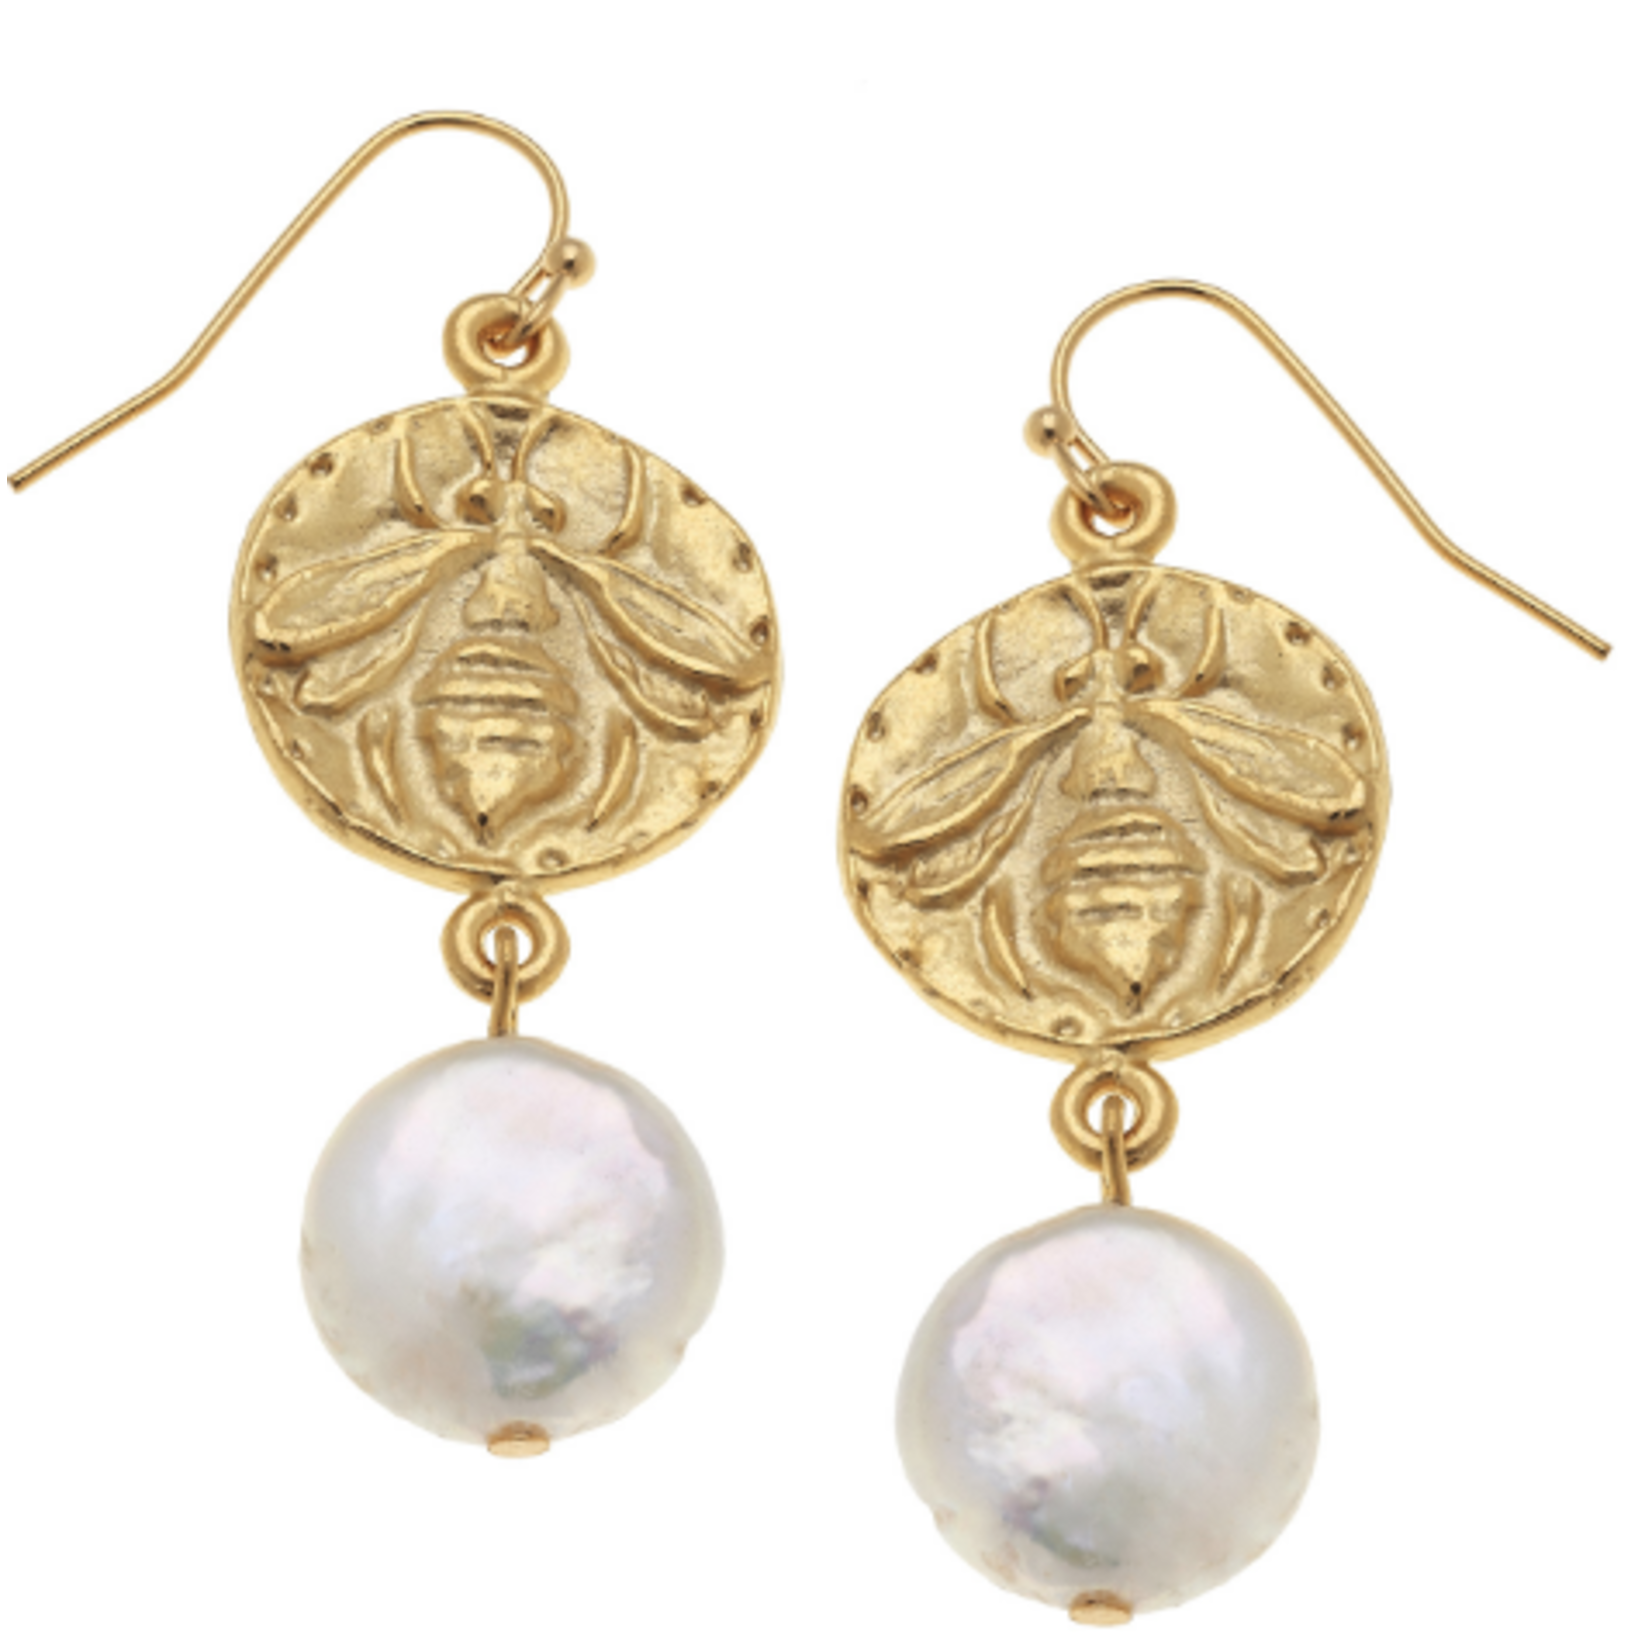 Susan Shaw Susan Shaw Gold Bee and Pearl Earrings